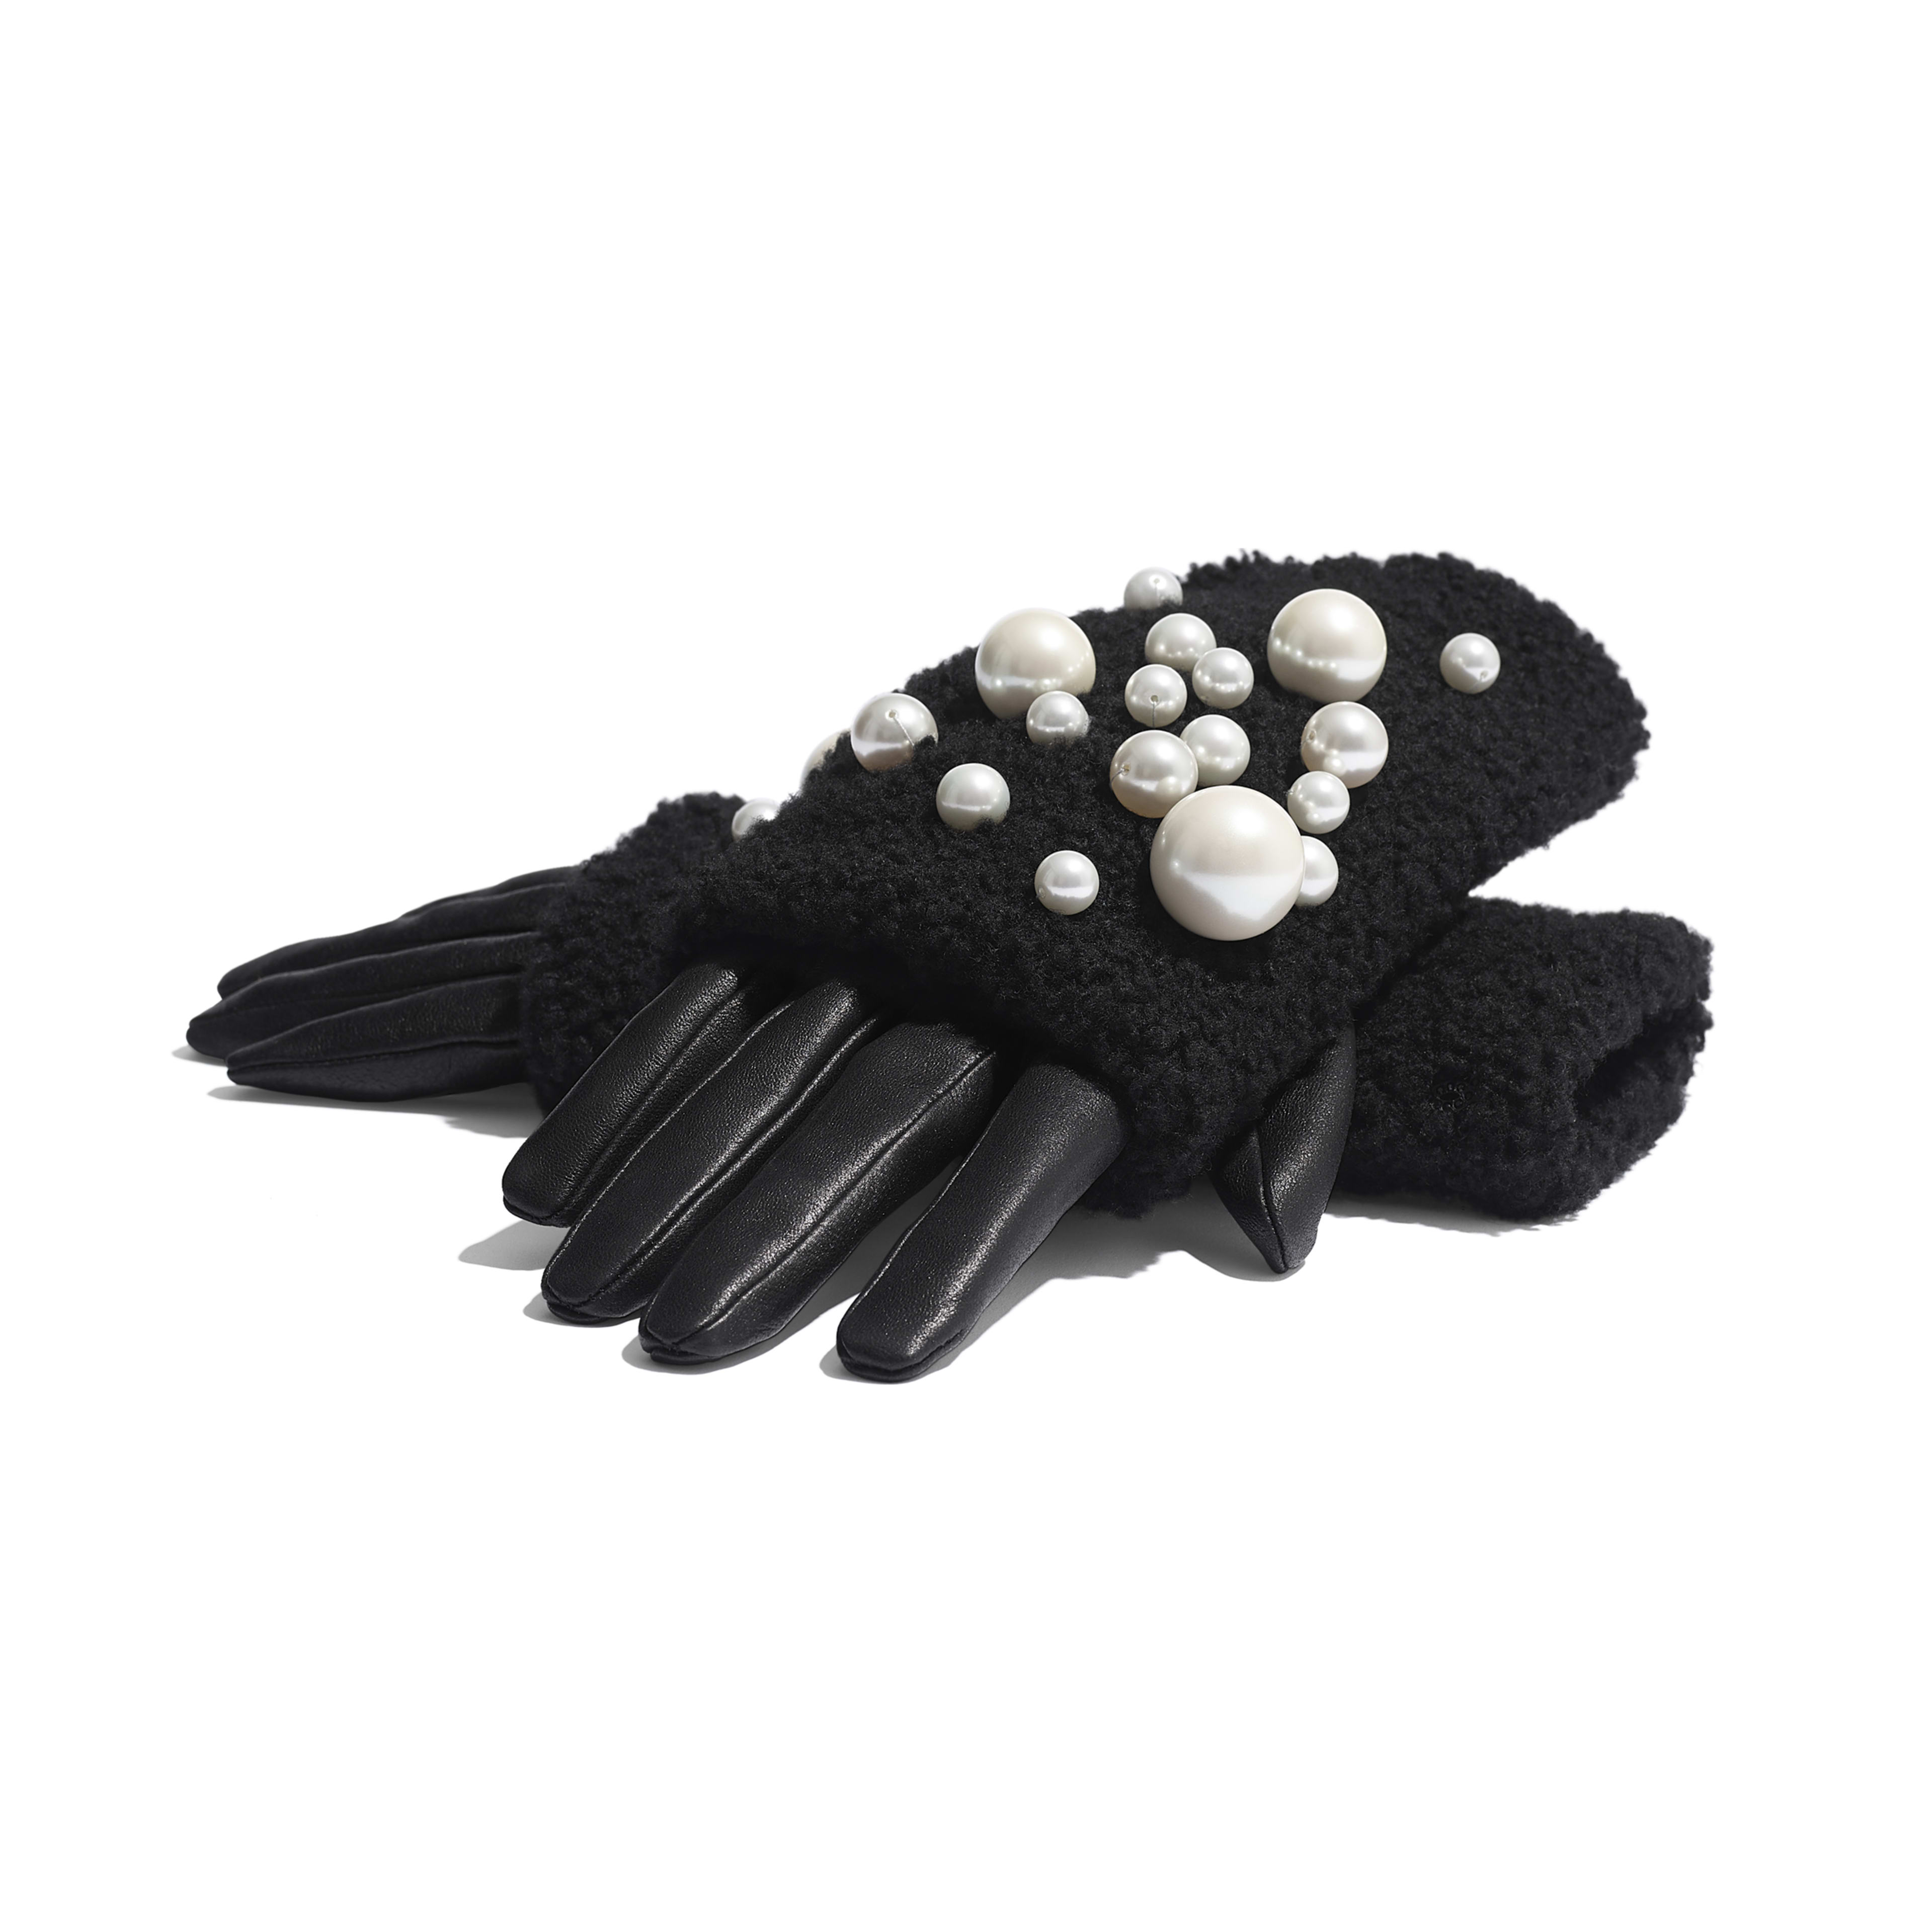 Gloves - Black - Lambskin, Shearling & Pearls - Alternative view - see full sized version